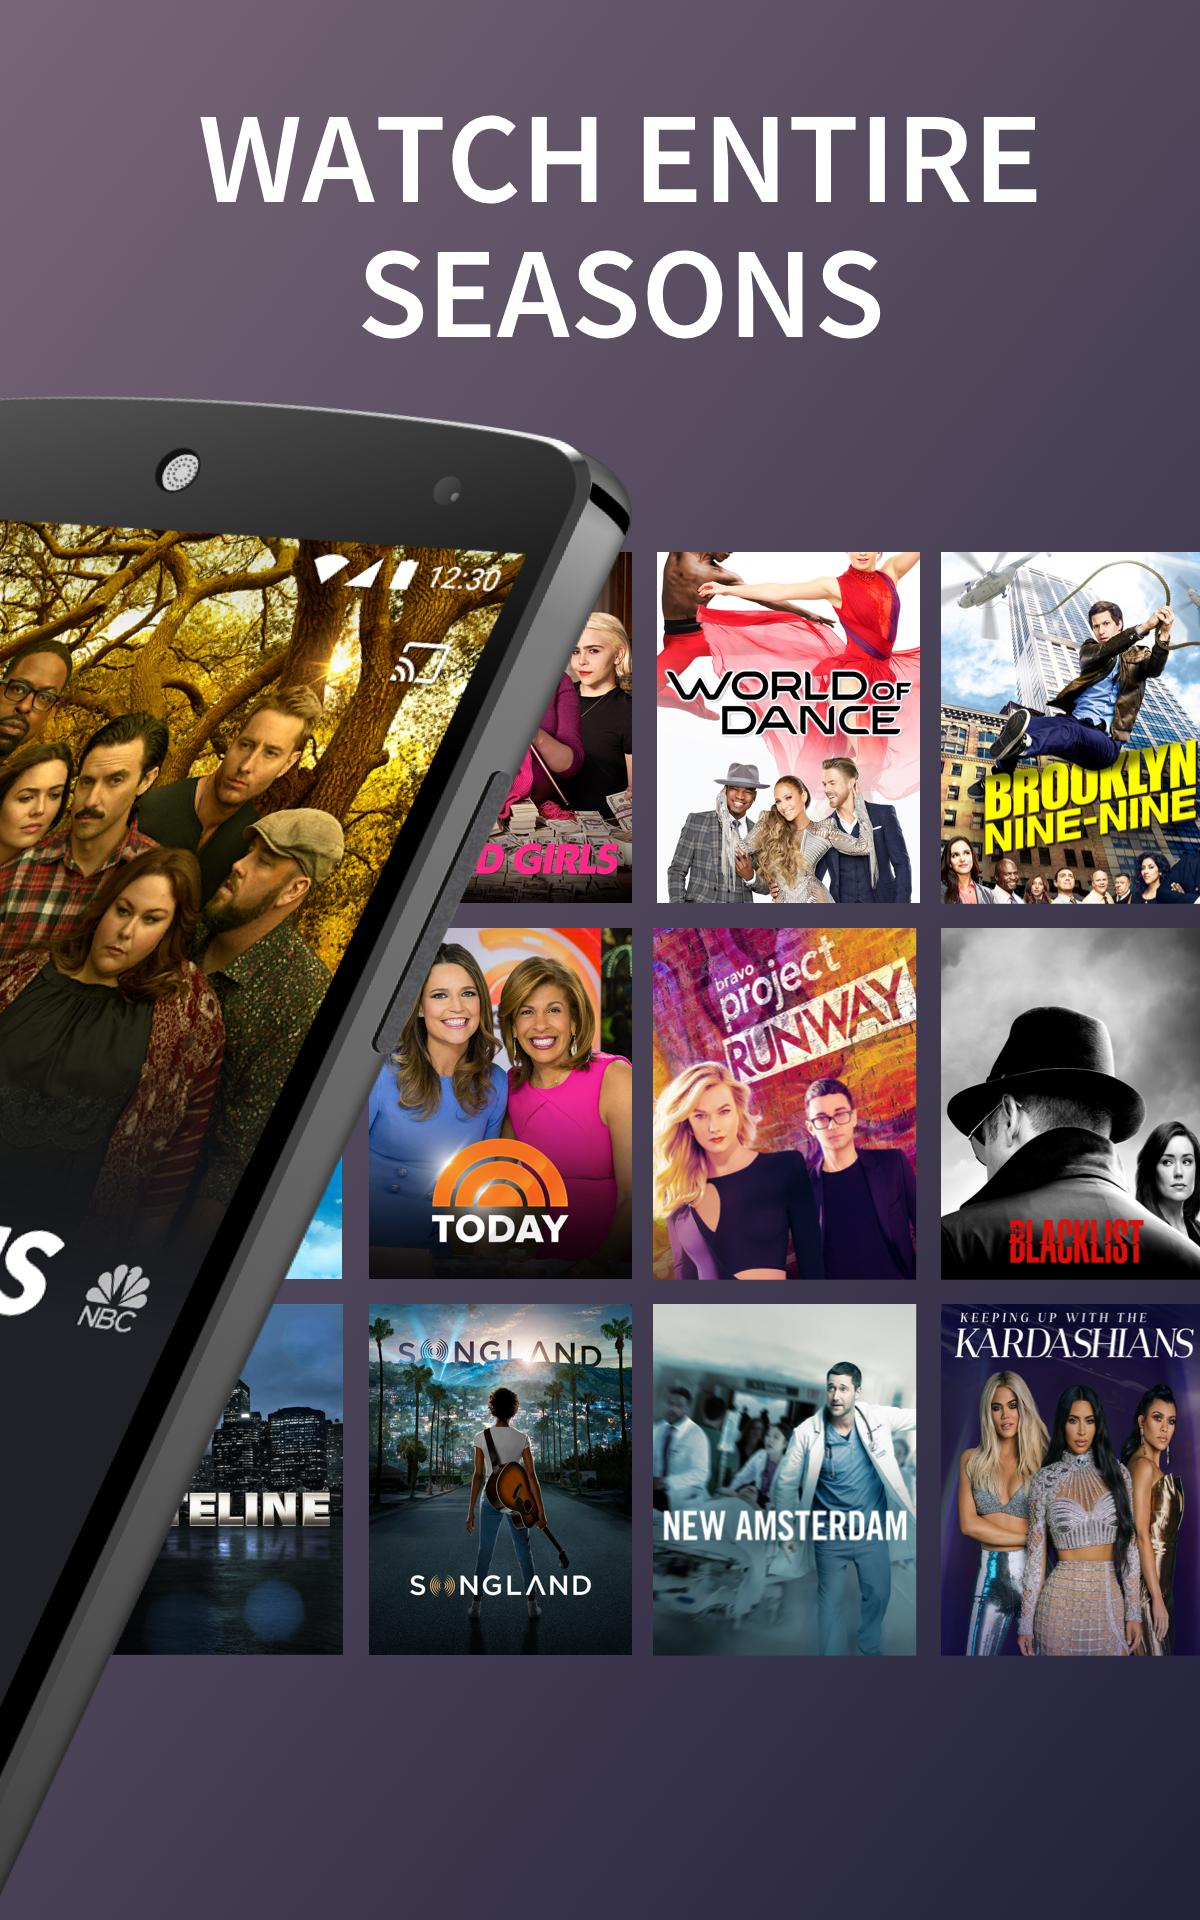 The NBC App - Stream Live TV and Episodes for Free 7.4.1 Screenshot 12